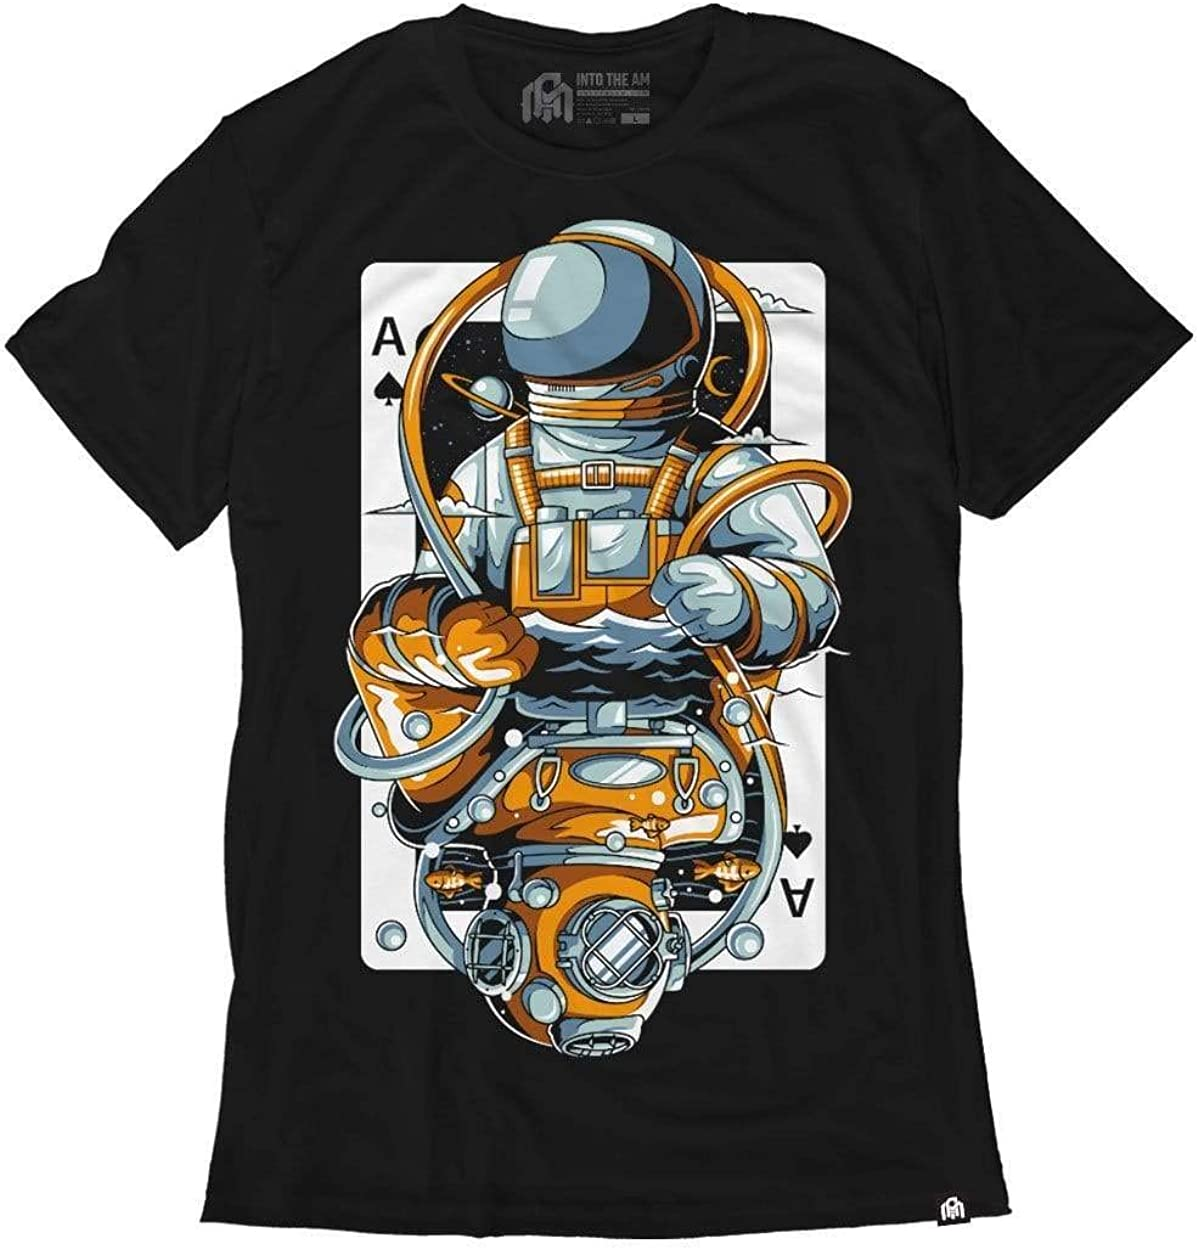 INTO THE AM Men's Graphic Tees - Short Sleeve T-Shirts for Men